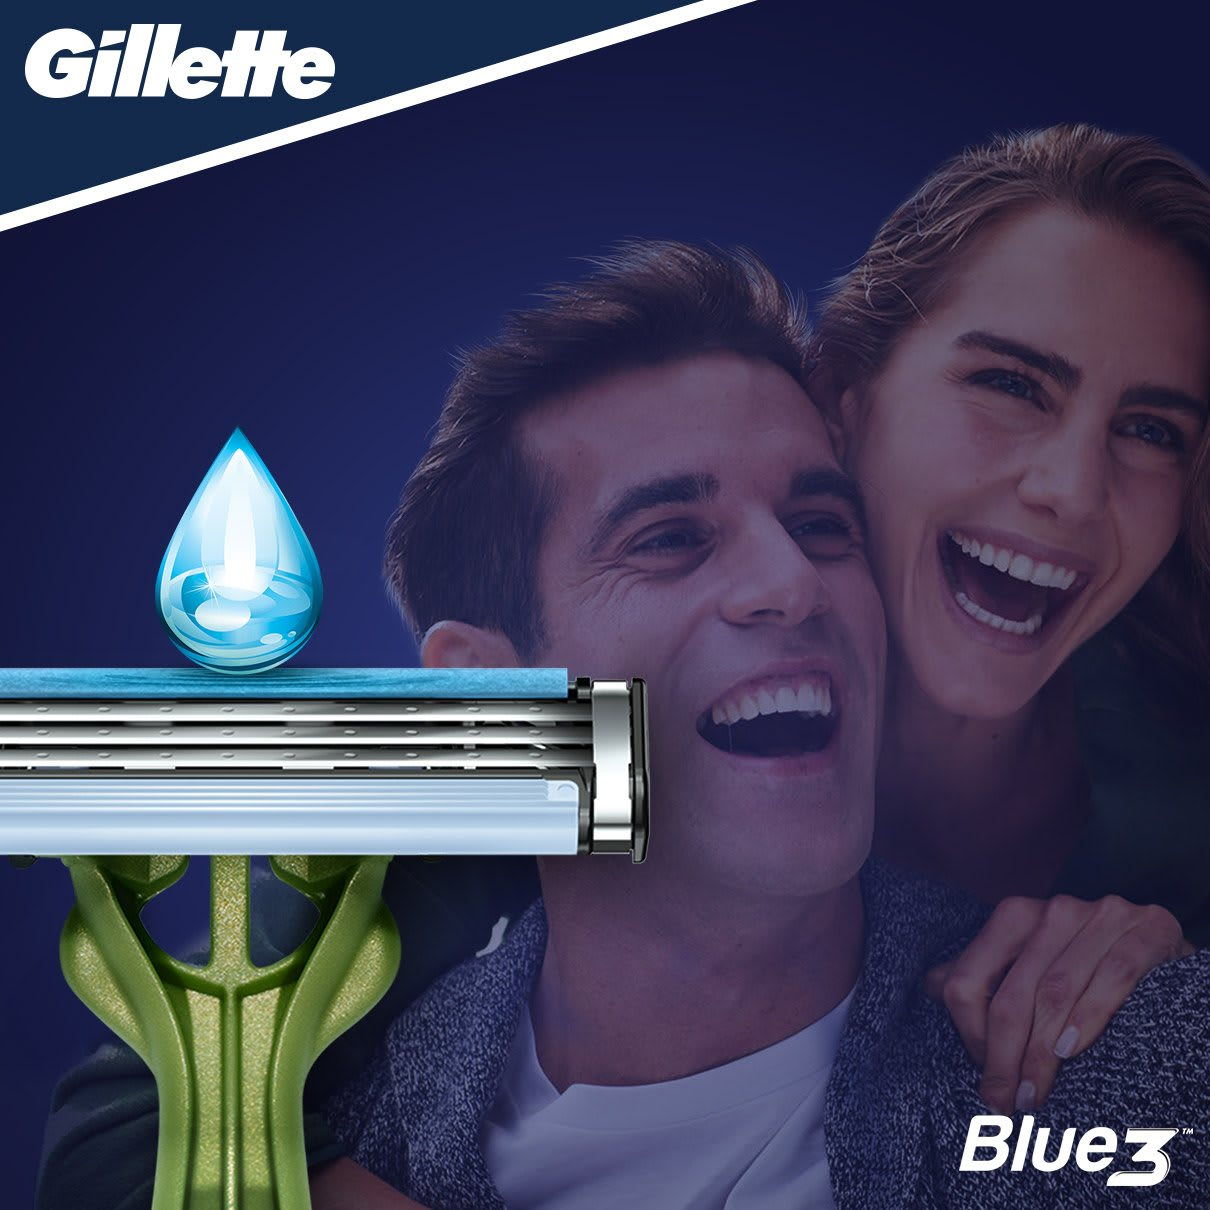 Gillette Blue3 Sensitive Rasoio Da Uomo Usa E Getta